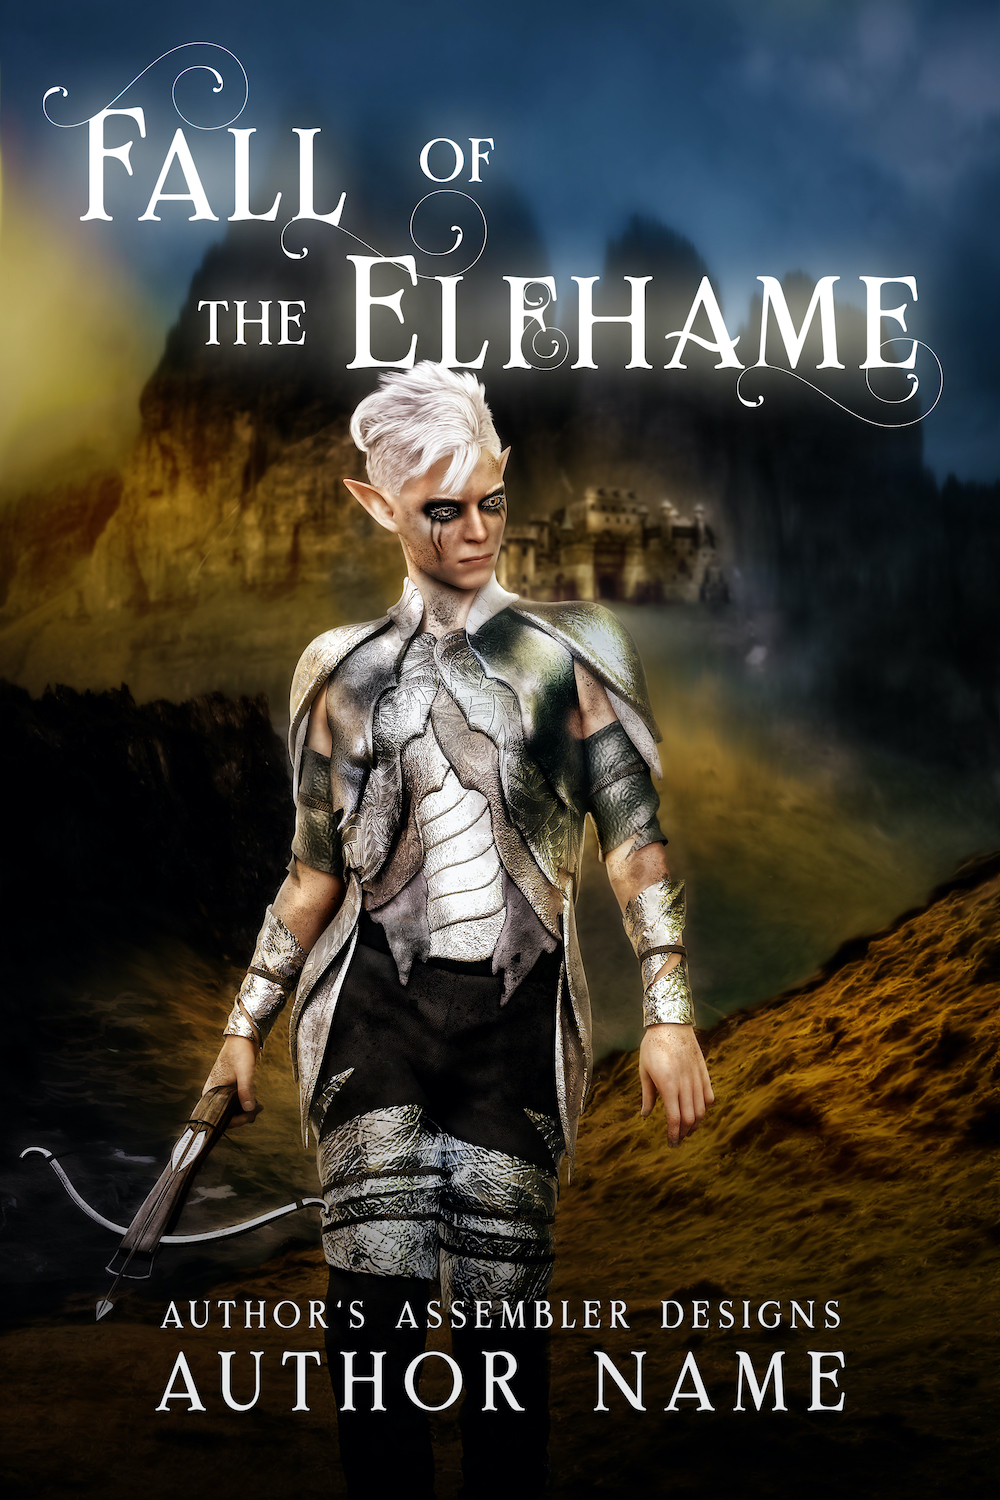 Fantasy Premade - Fall of Elfhame